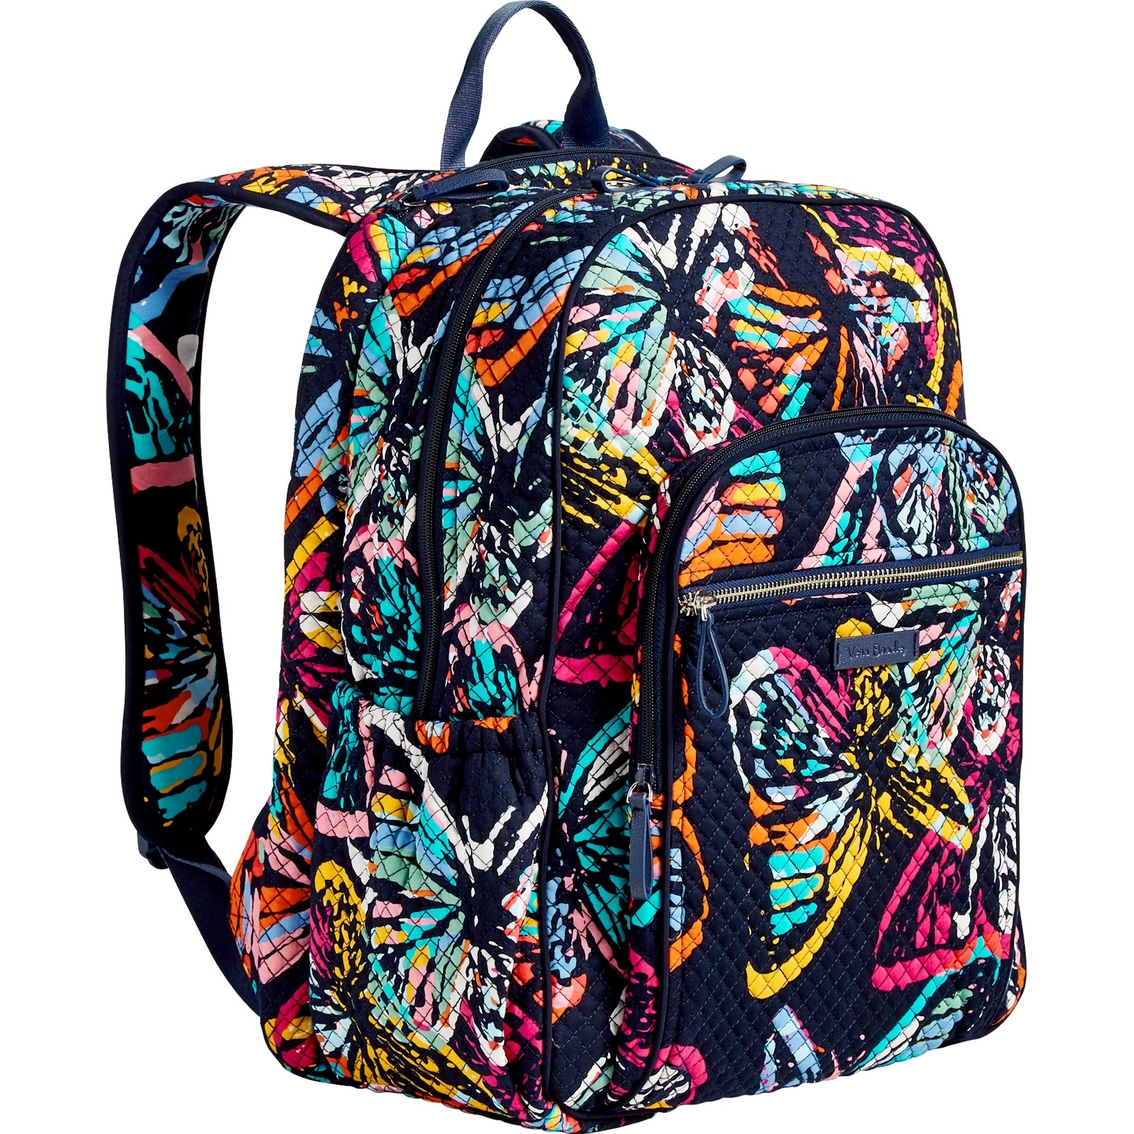 c0f12495603 Vera Bradley Iconic Campus Backpack, Butterfly Flutter   Shop By ...